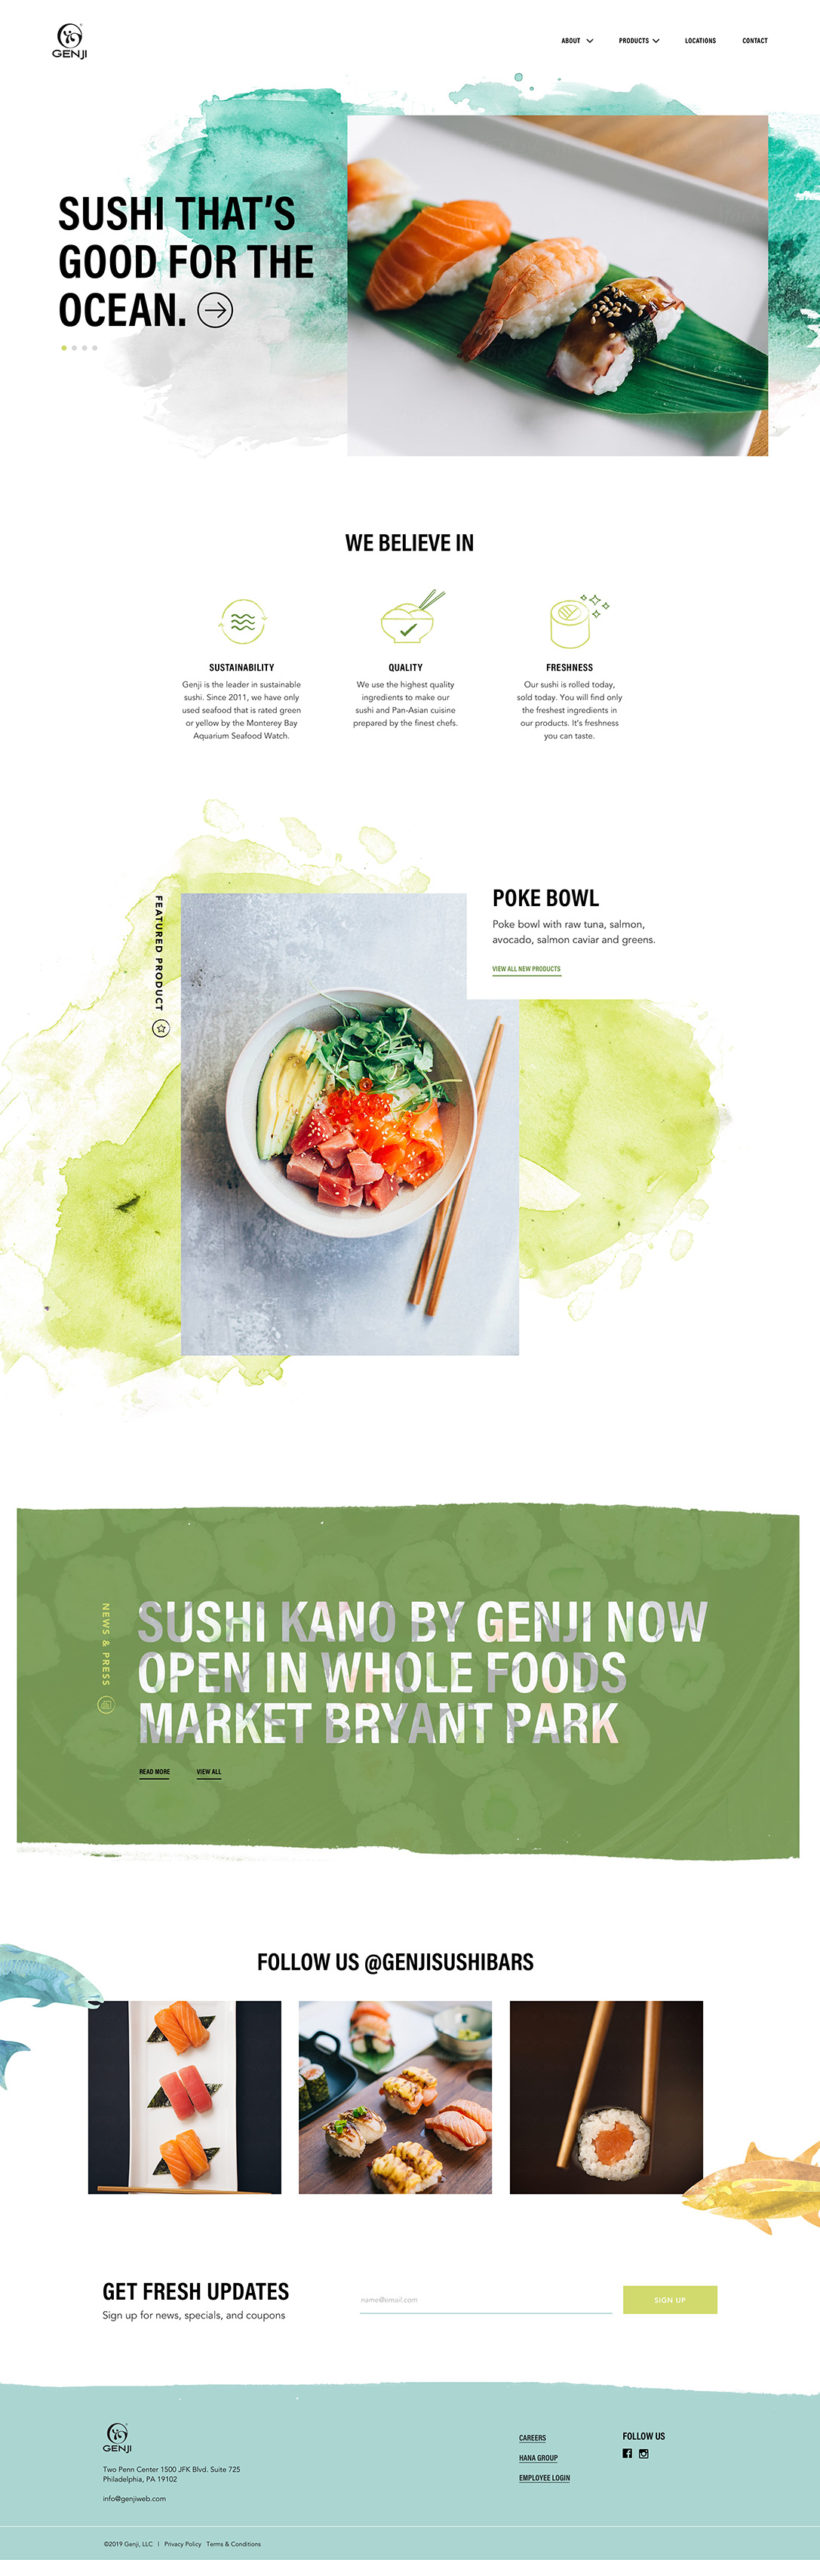 Homepage Web Design for Sushi Brand